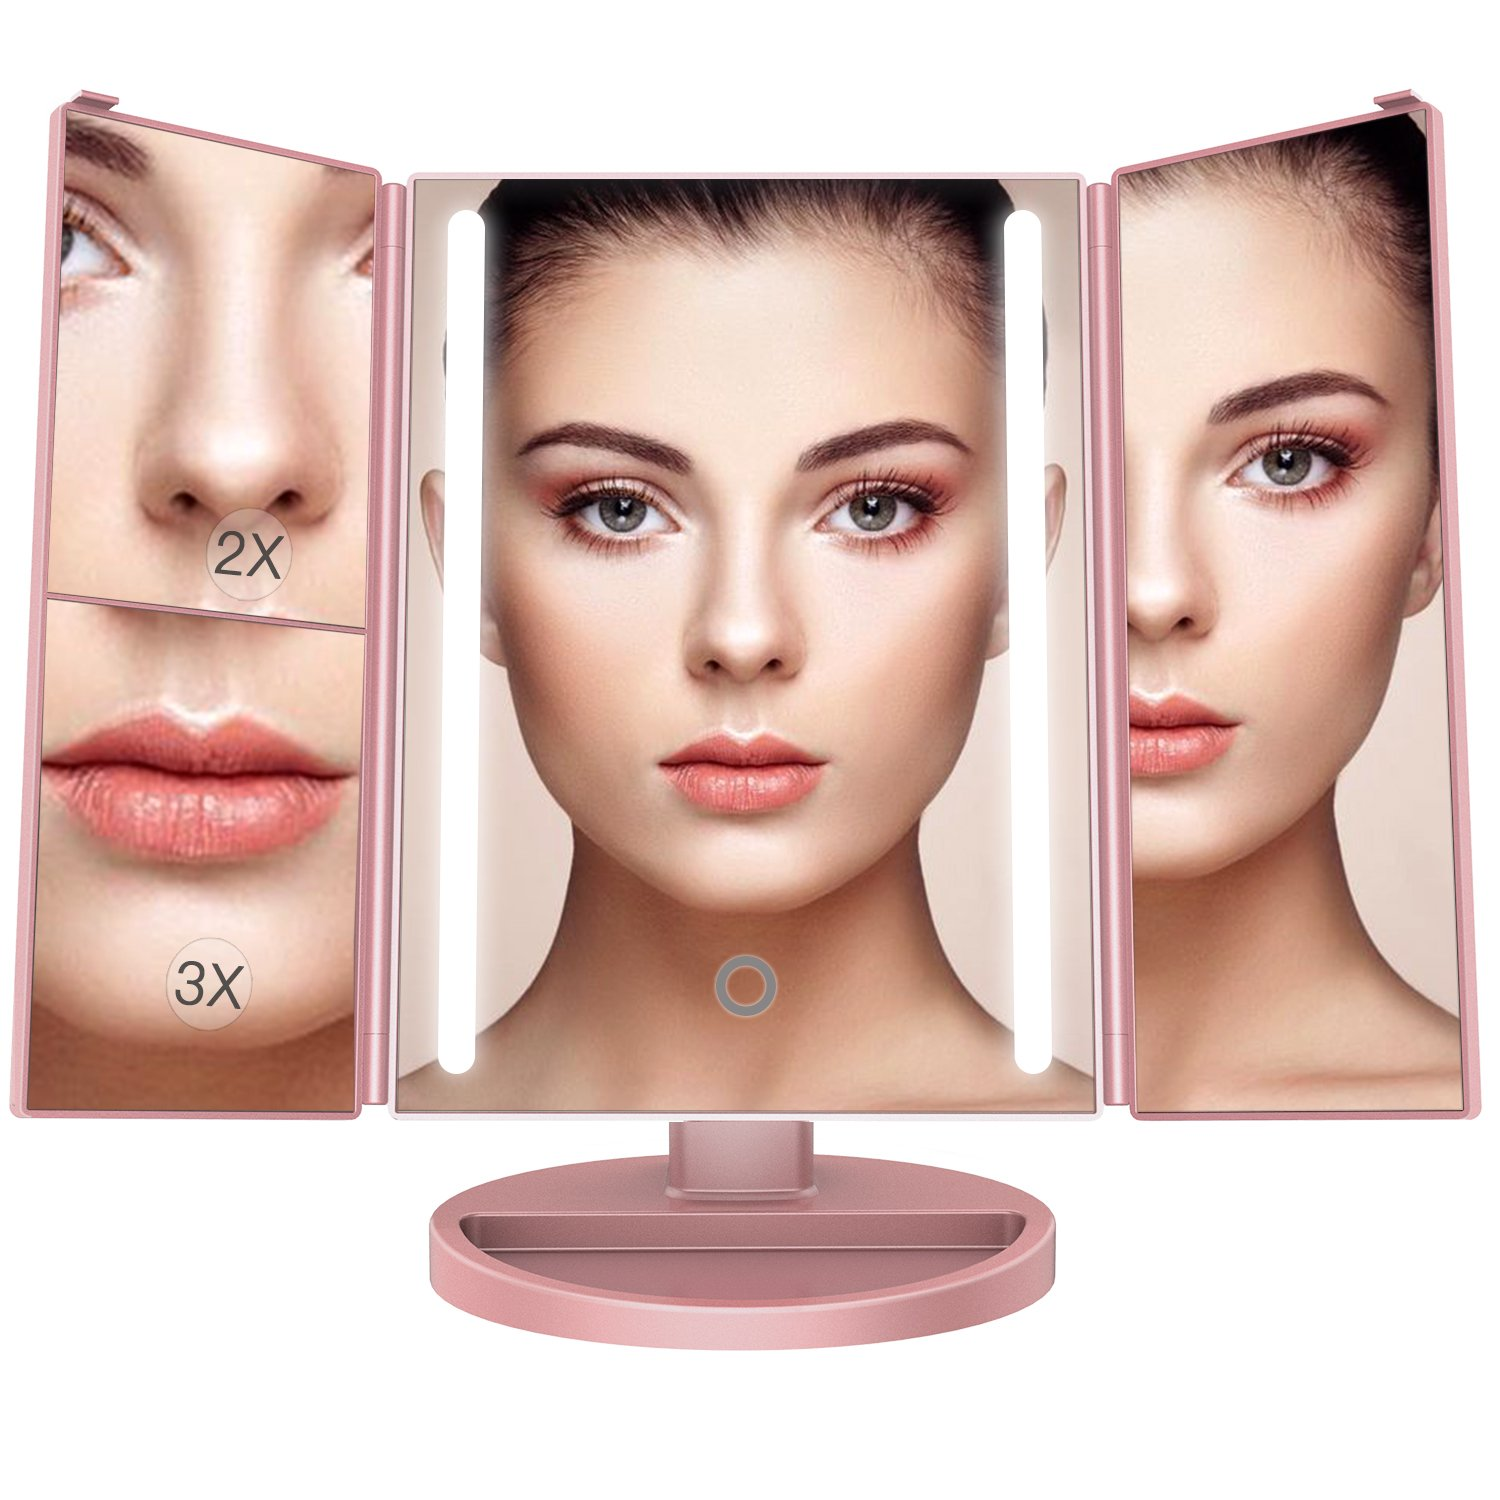 BESTOPE 24 Led Makeup Mirror Larger Vanity Mirror with 3x/2x Magnification,Trifold Lighted Mirror,Touch Screen, 180° Adjustable Rotation,Battery and USB Powered,Countertop Cosmetic Mirror